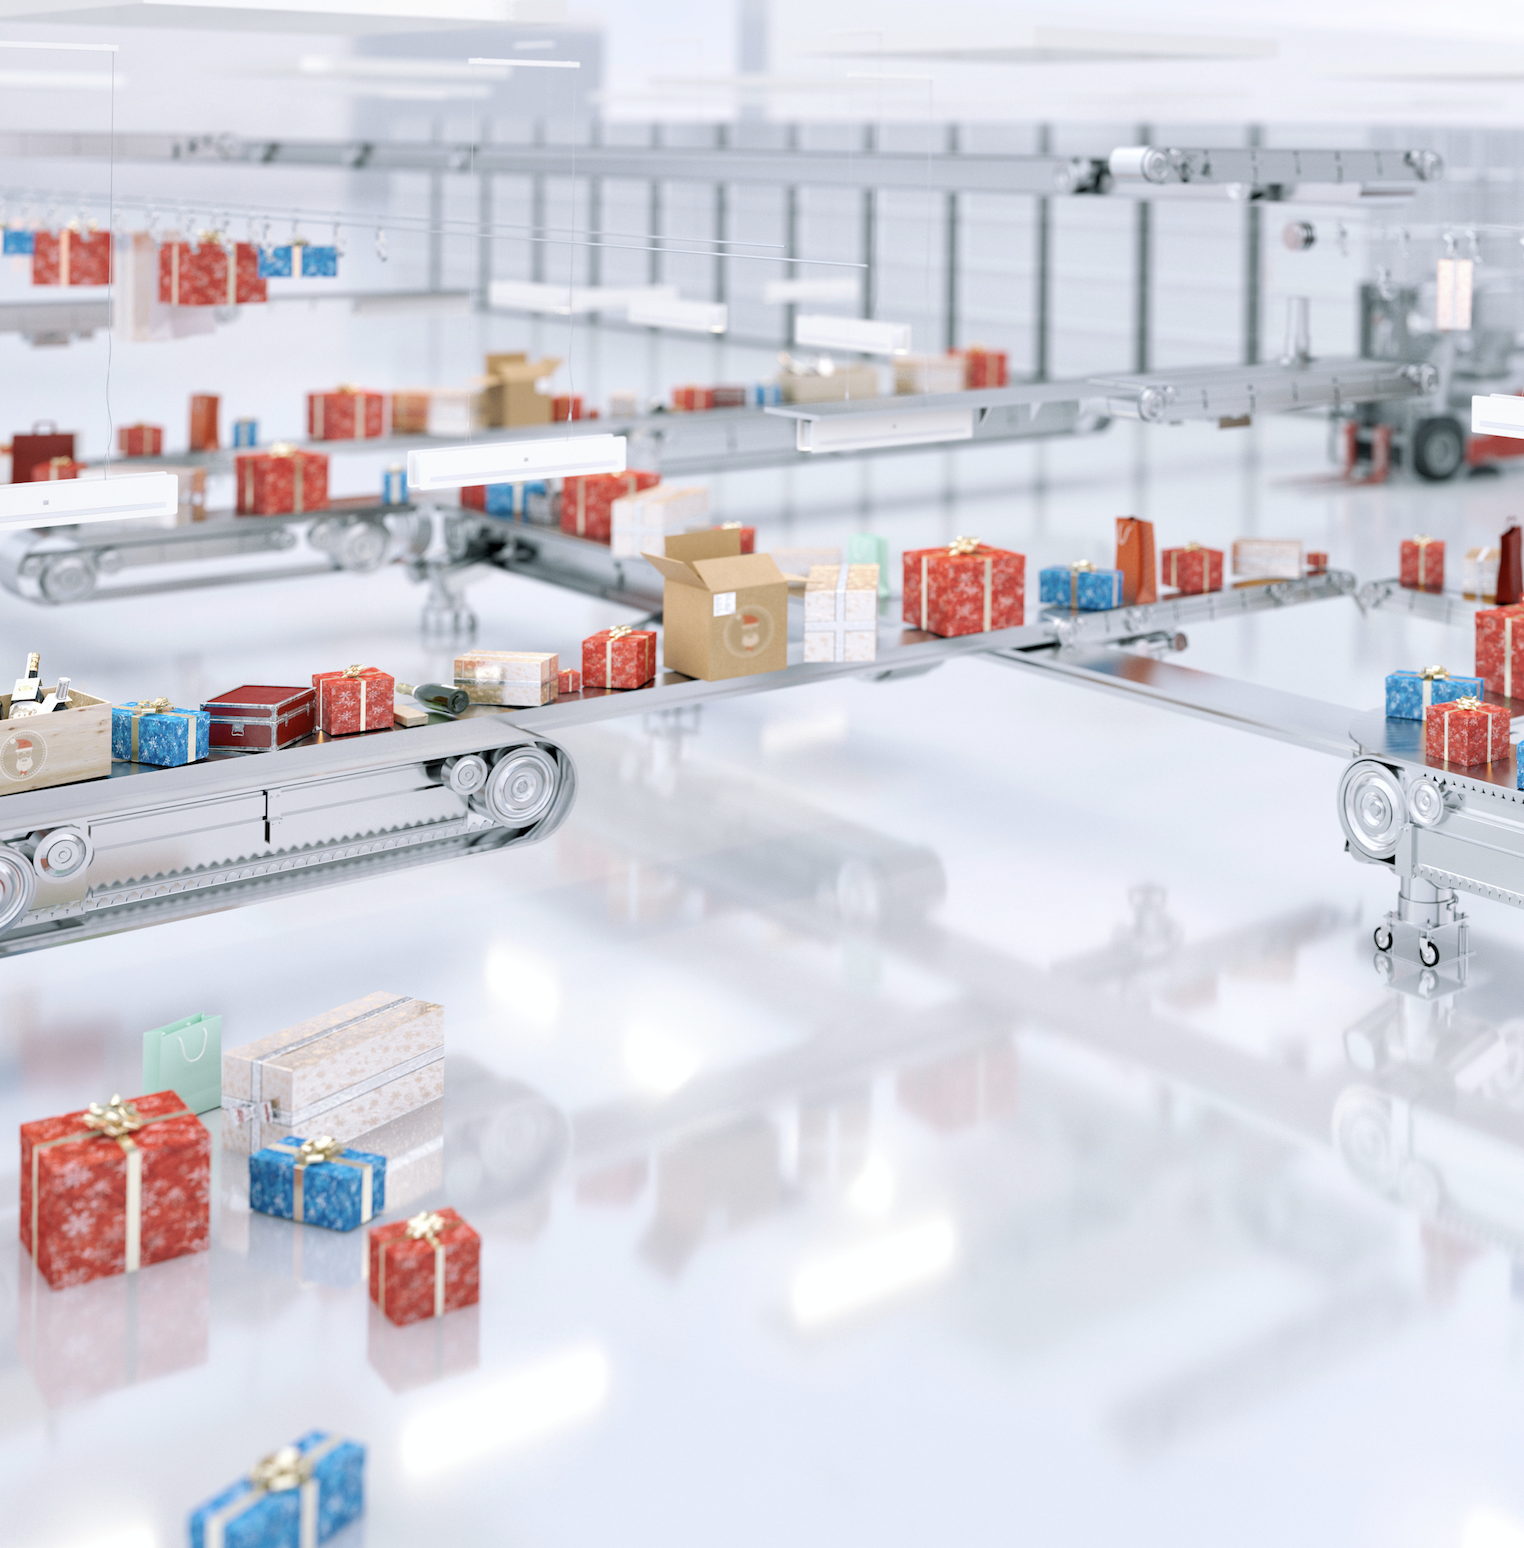 This week's top stories in supply chain and logistics: 2019 holiday returns could reach $41.6B, FedEx profits fall 40%, 11 out of 16 retail bankruptcies this year are apparel, and investment in Hong Kong warehousing market falls 52% amid protests